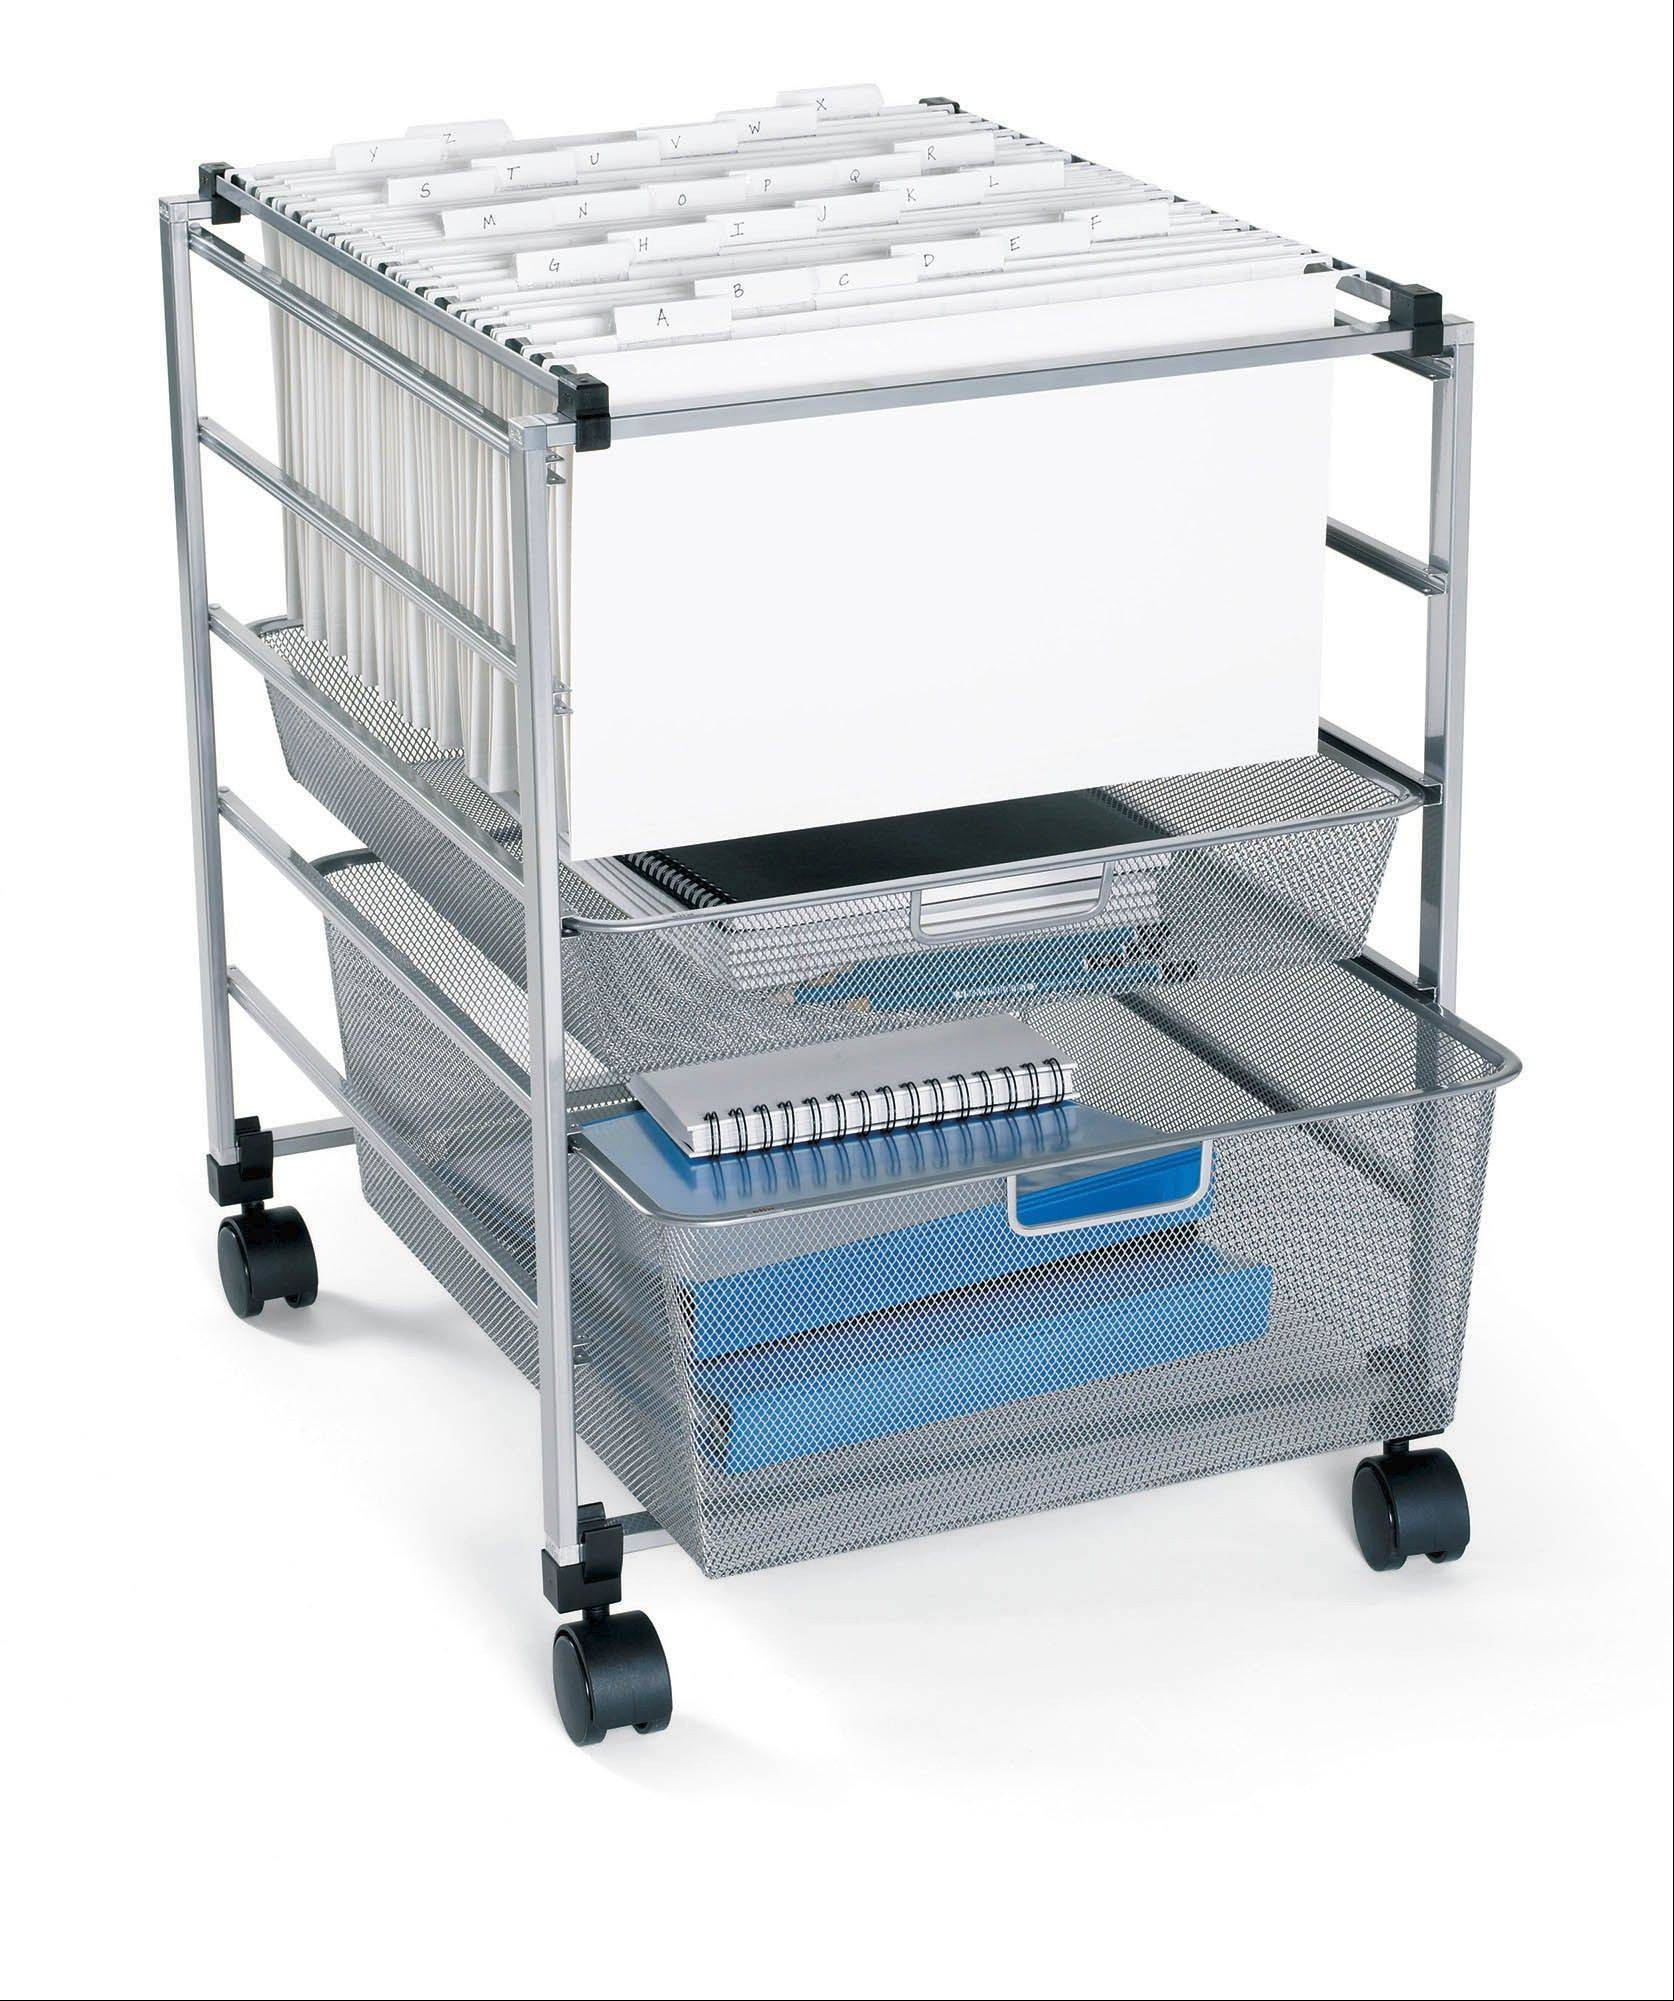 filing carts with casters can be moved easily, which comes in handy if your work space cart is in a kitchen or living room area. Consider the Elfa Mesh File Cart from the Container Store.